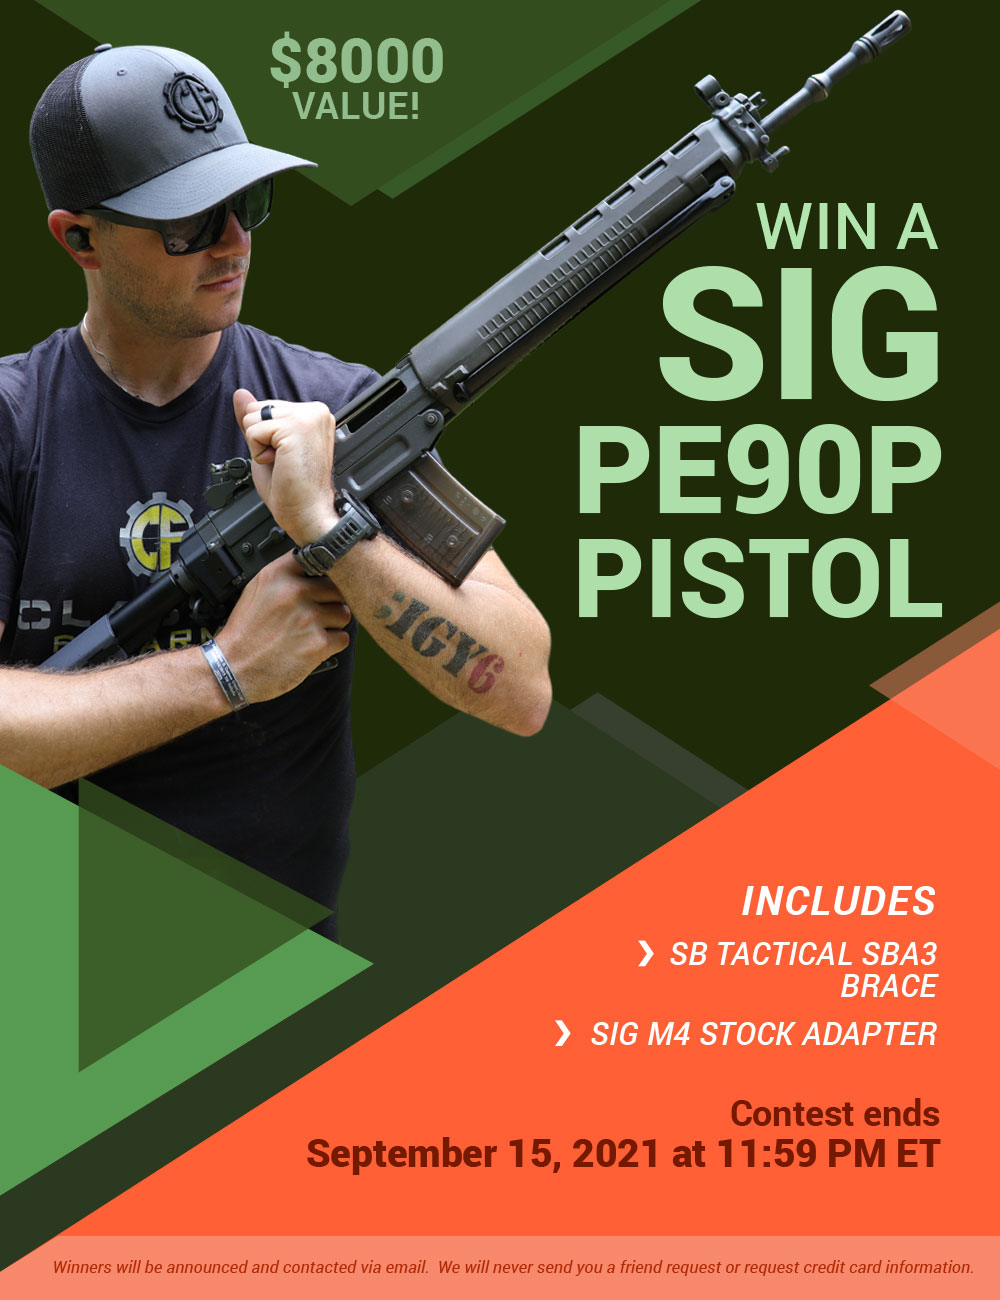 online contests, sweepstakes and giveaways - Win A Sig Sauer PE90 Pistol